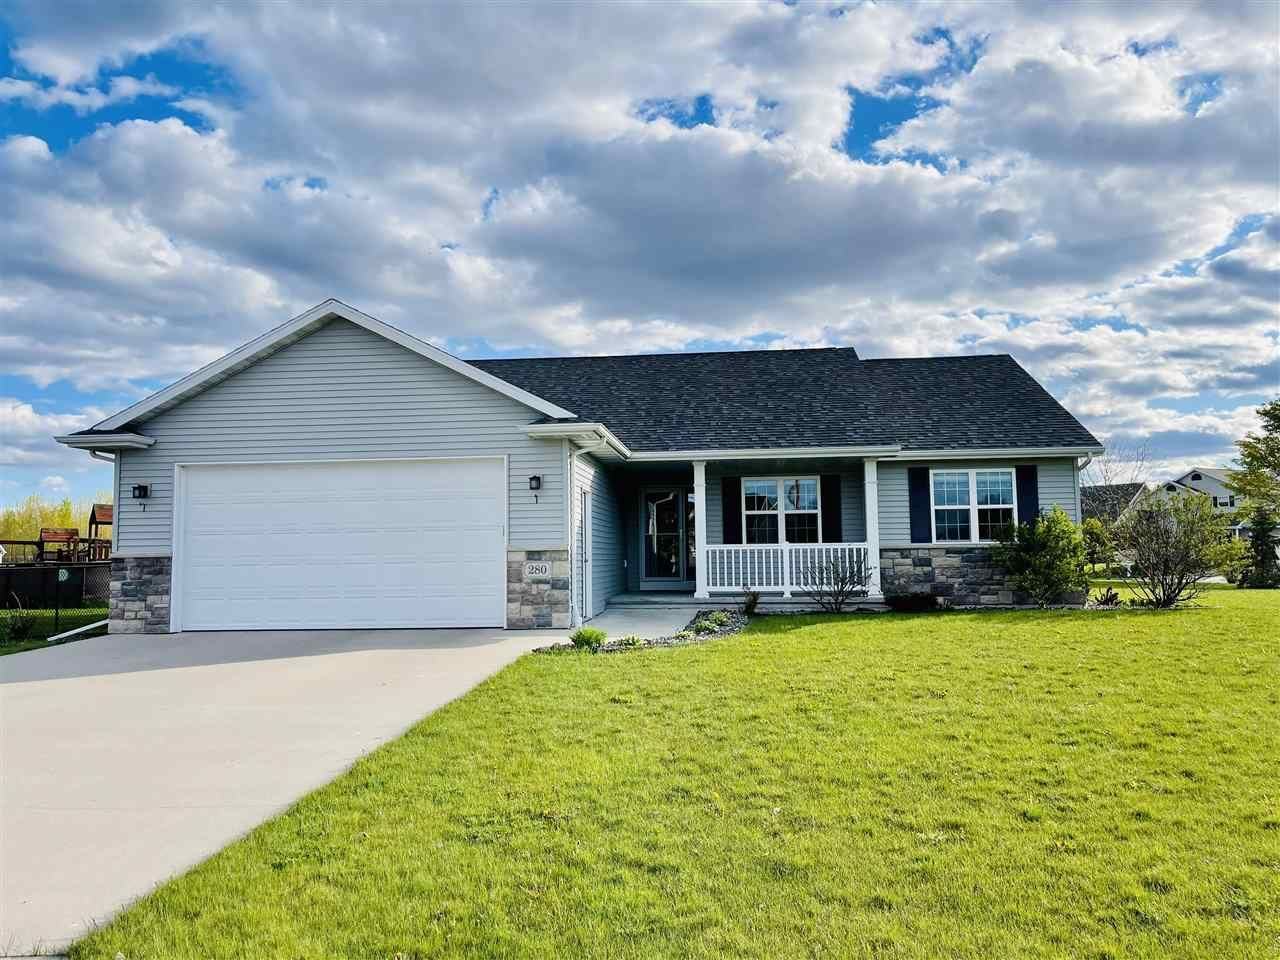 280 FORT Drive, Neenah, WI 54956 - MLS#: 50239971